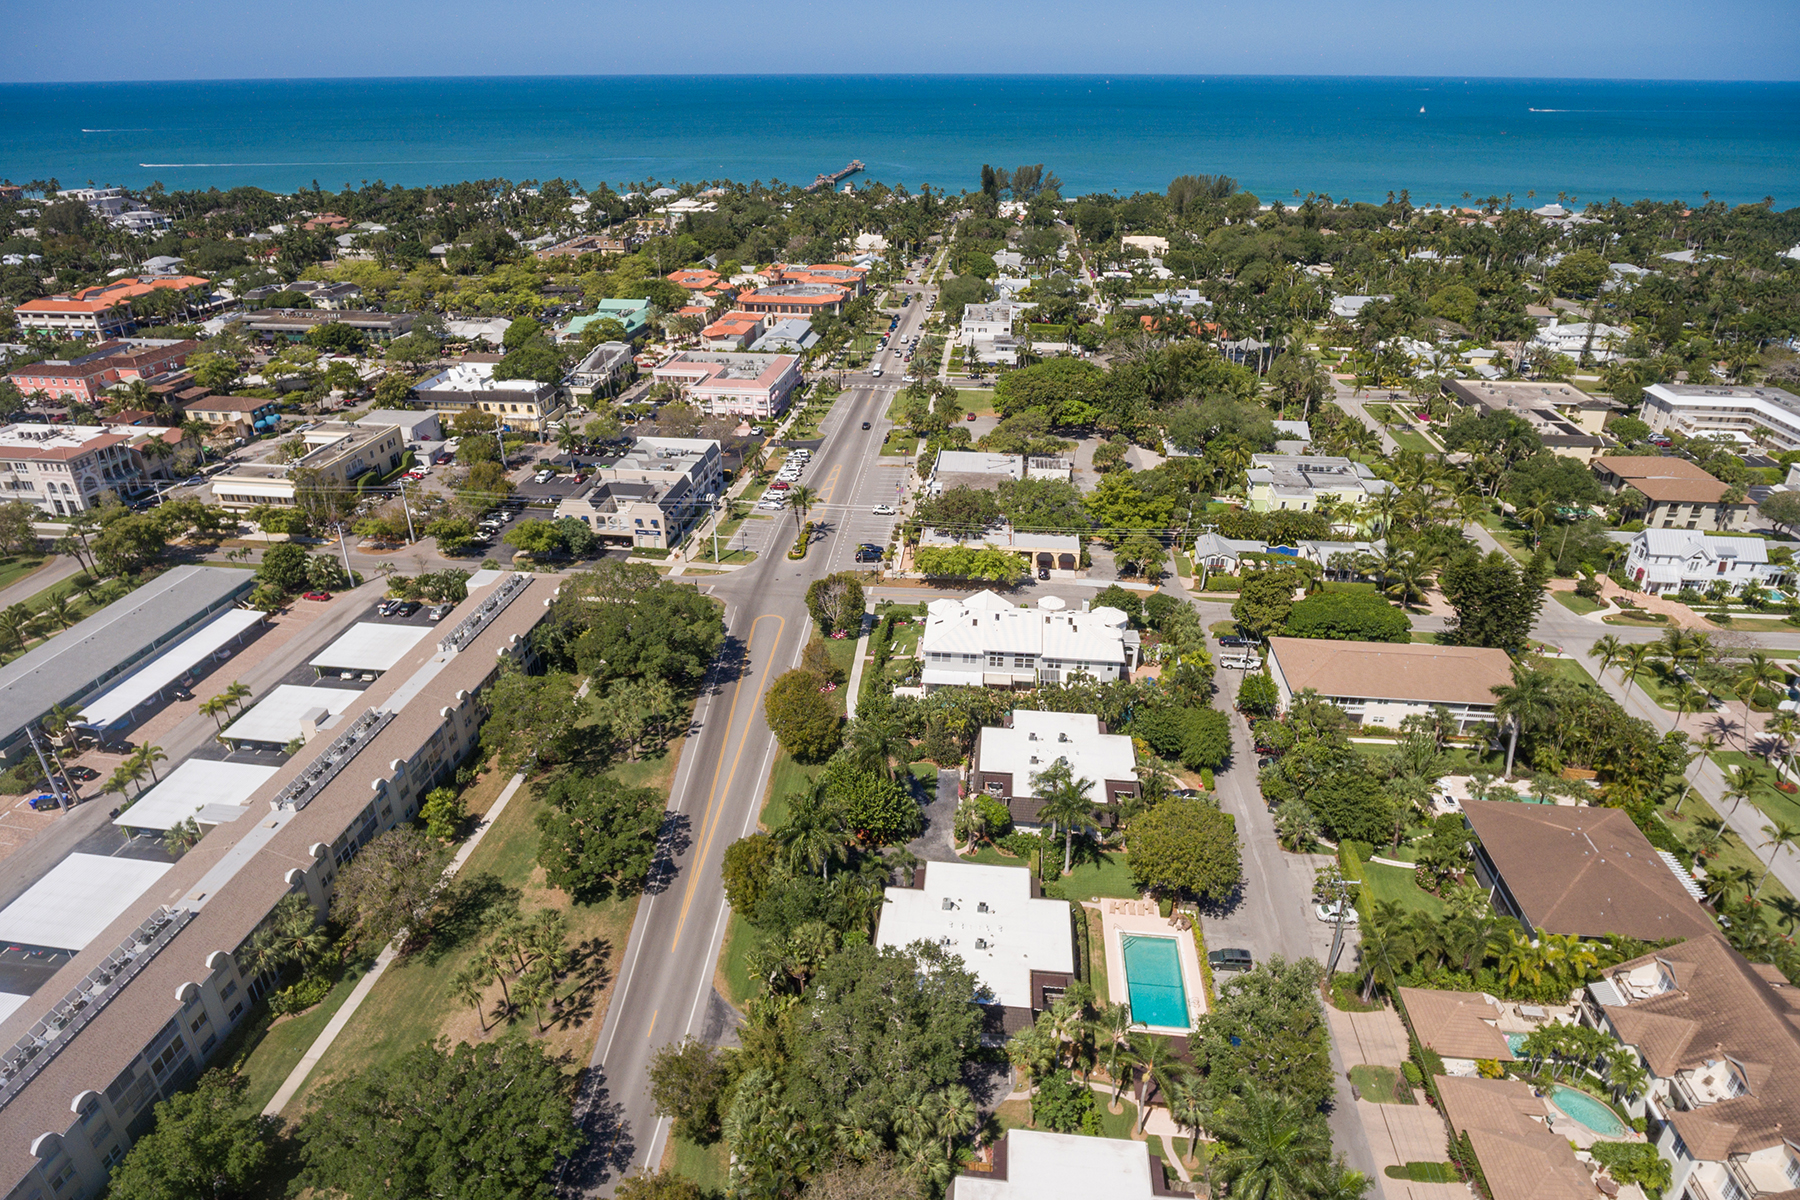 Condominium for Sale at 465 Broad Ave S, Naples, FL 34102 465 Broad Ave S 2B Naples, Florida, 34102 United States